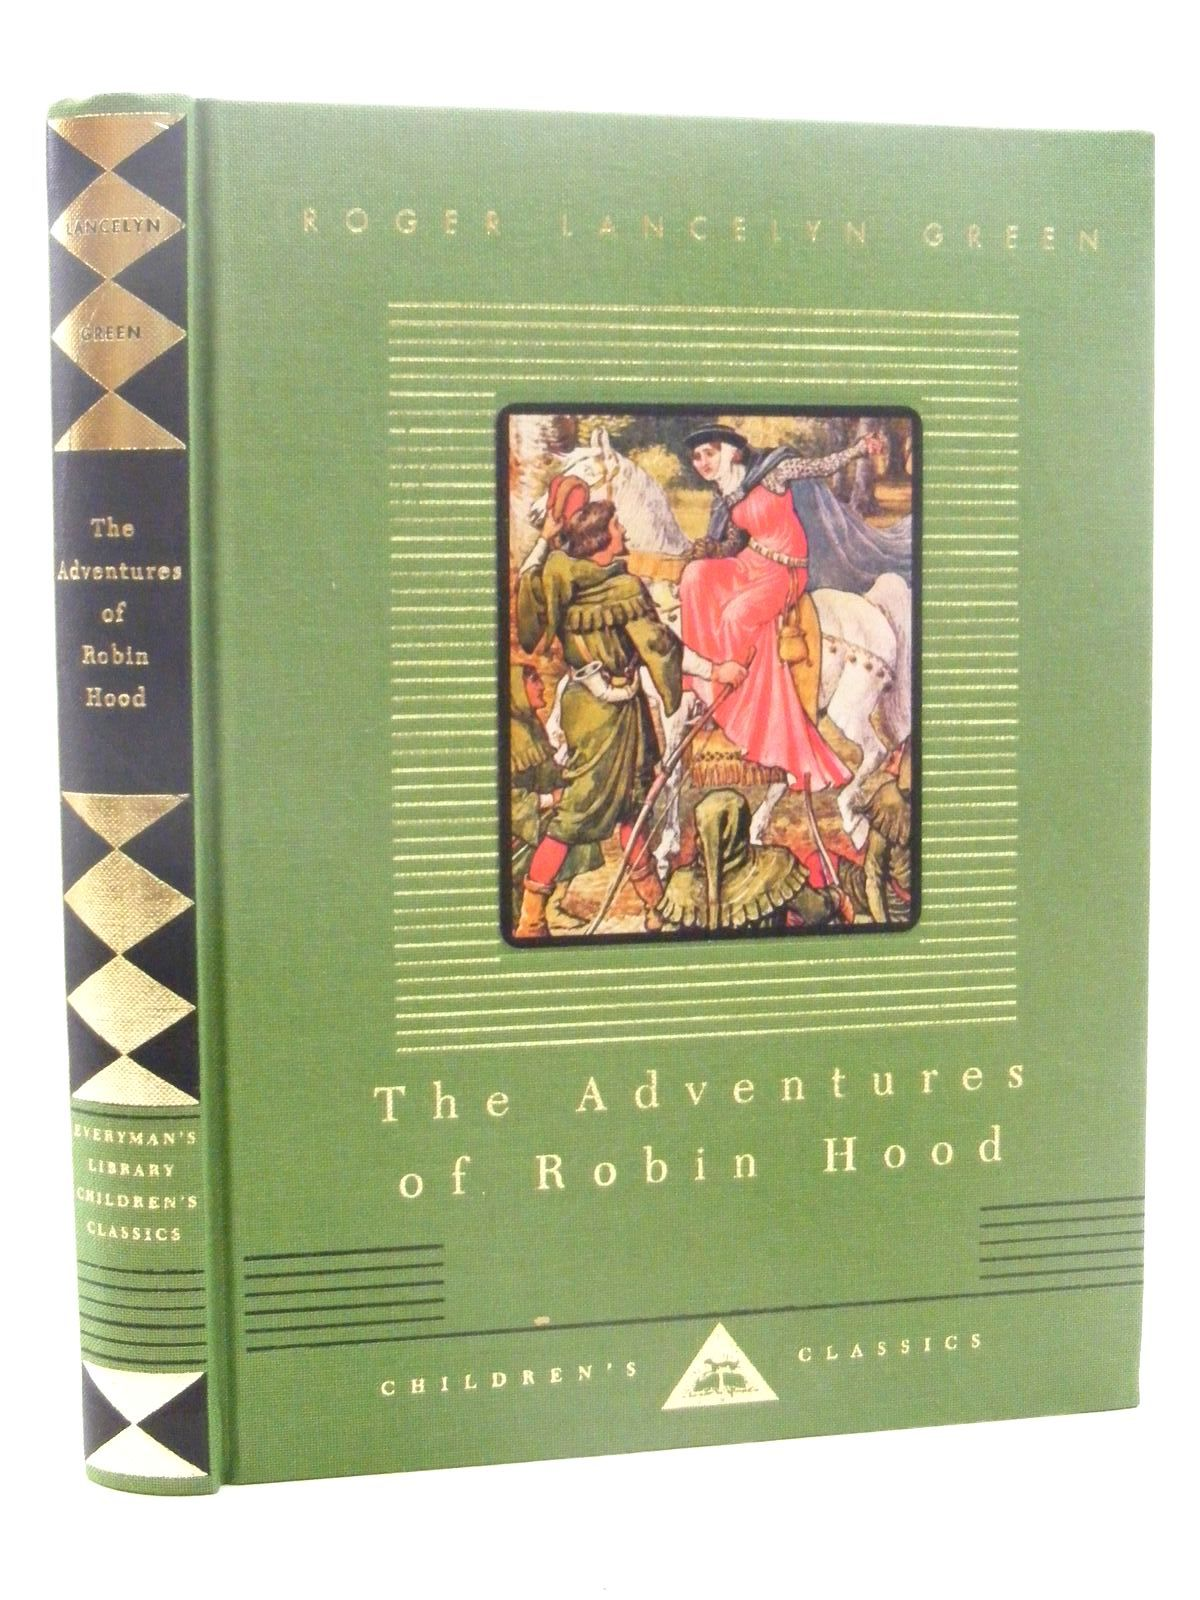 Photo of THE ADVENTURES OF ROBIN HOOD written by Green, Roger Lancelyn illustrated by Crane, Walter published by Everymans Library (STOCK CODE: 1815960)  for sale by Stella & Rose's Books